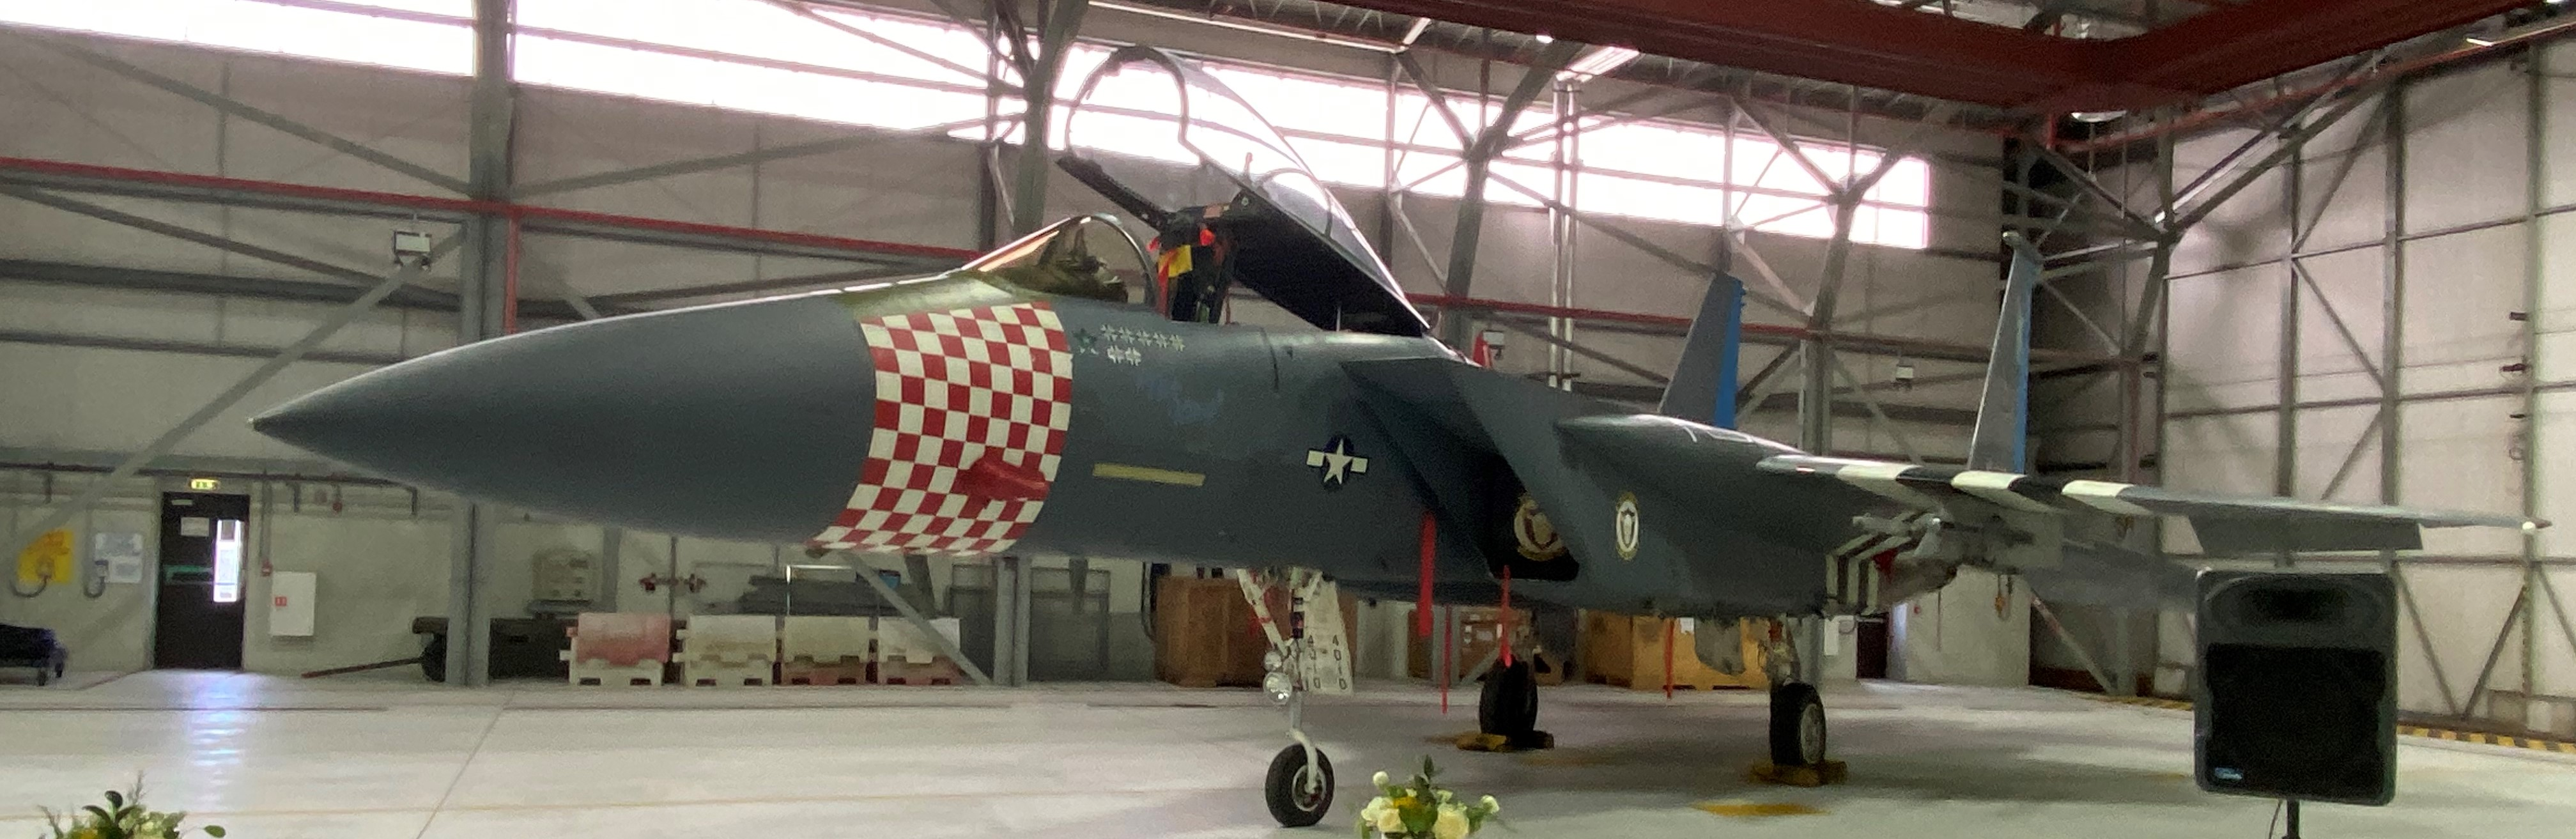 """48th Fighter Wing """"Heritage Jets"""""""